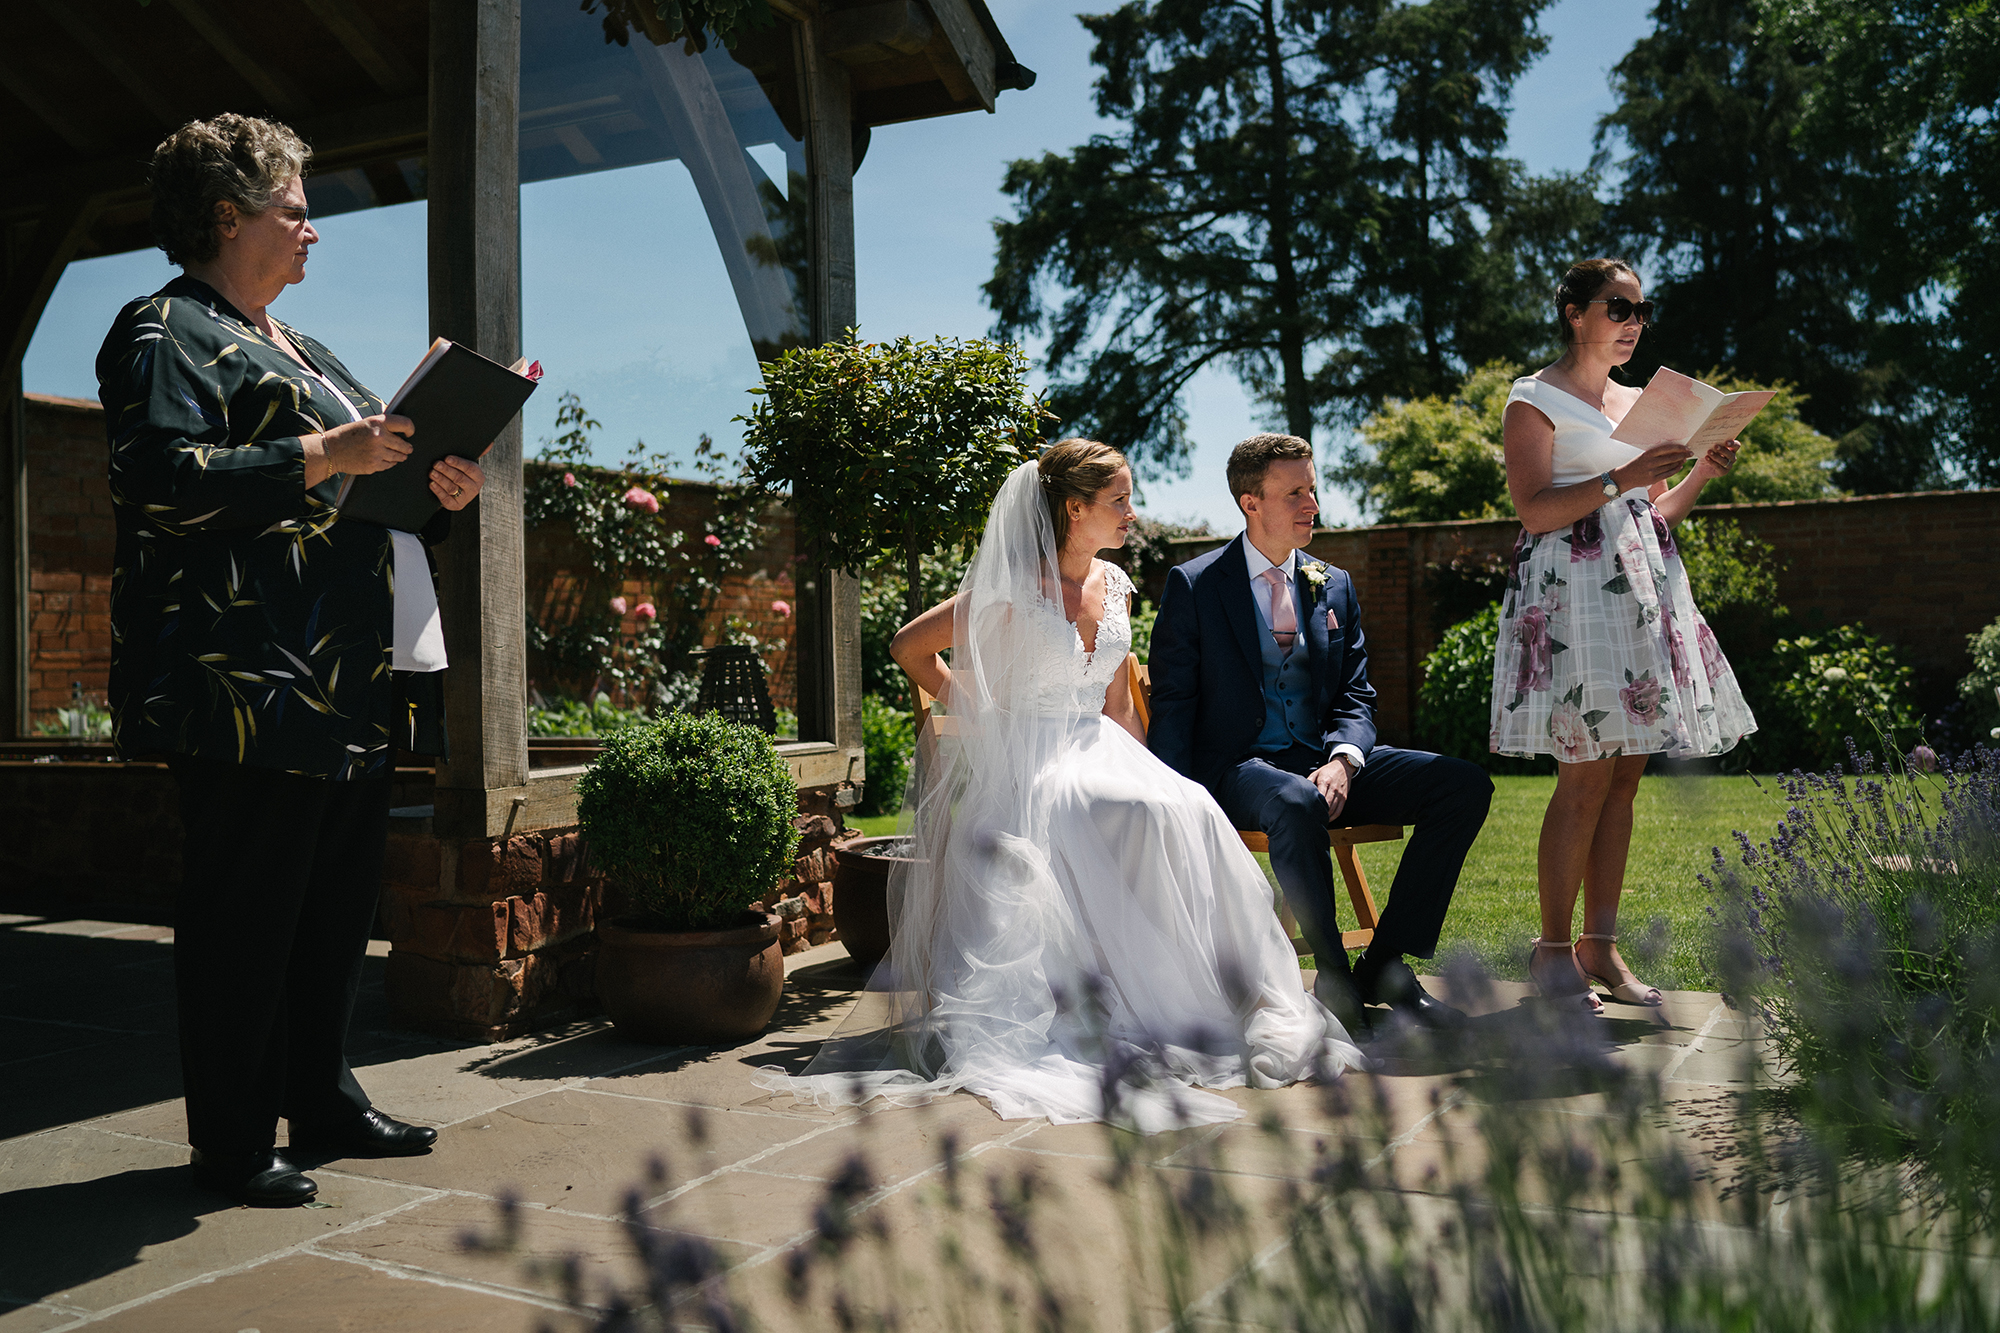 Guest gives a reading for the Bride and Groom by the arbour in the Walled Garden at Upton Barn while they and the Registrar look on.